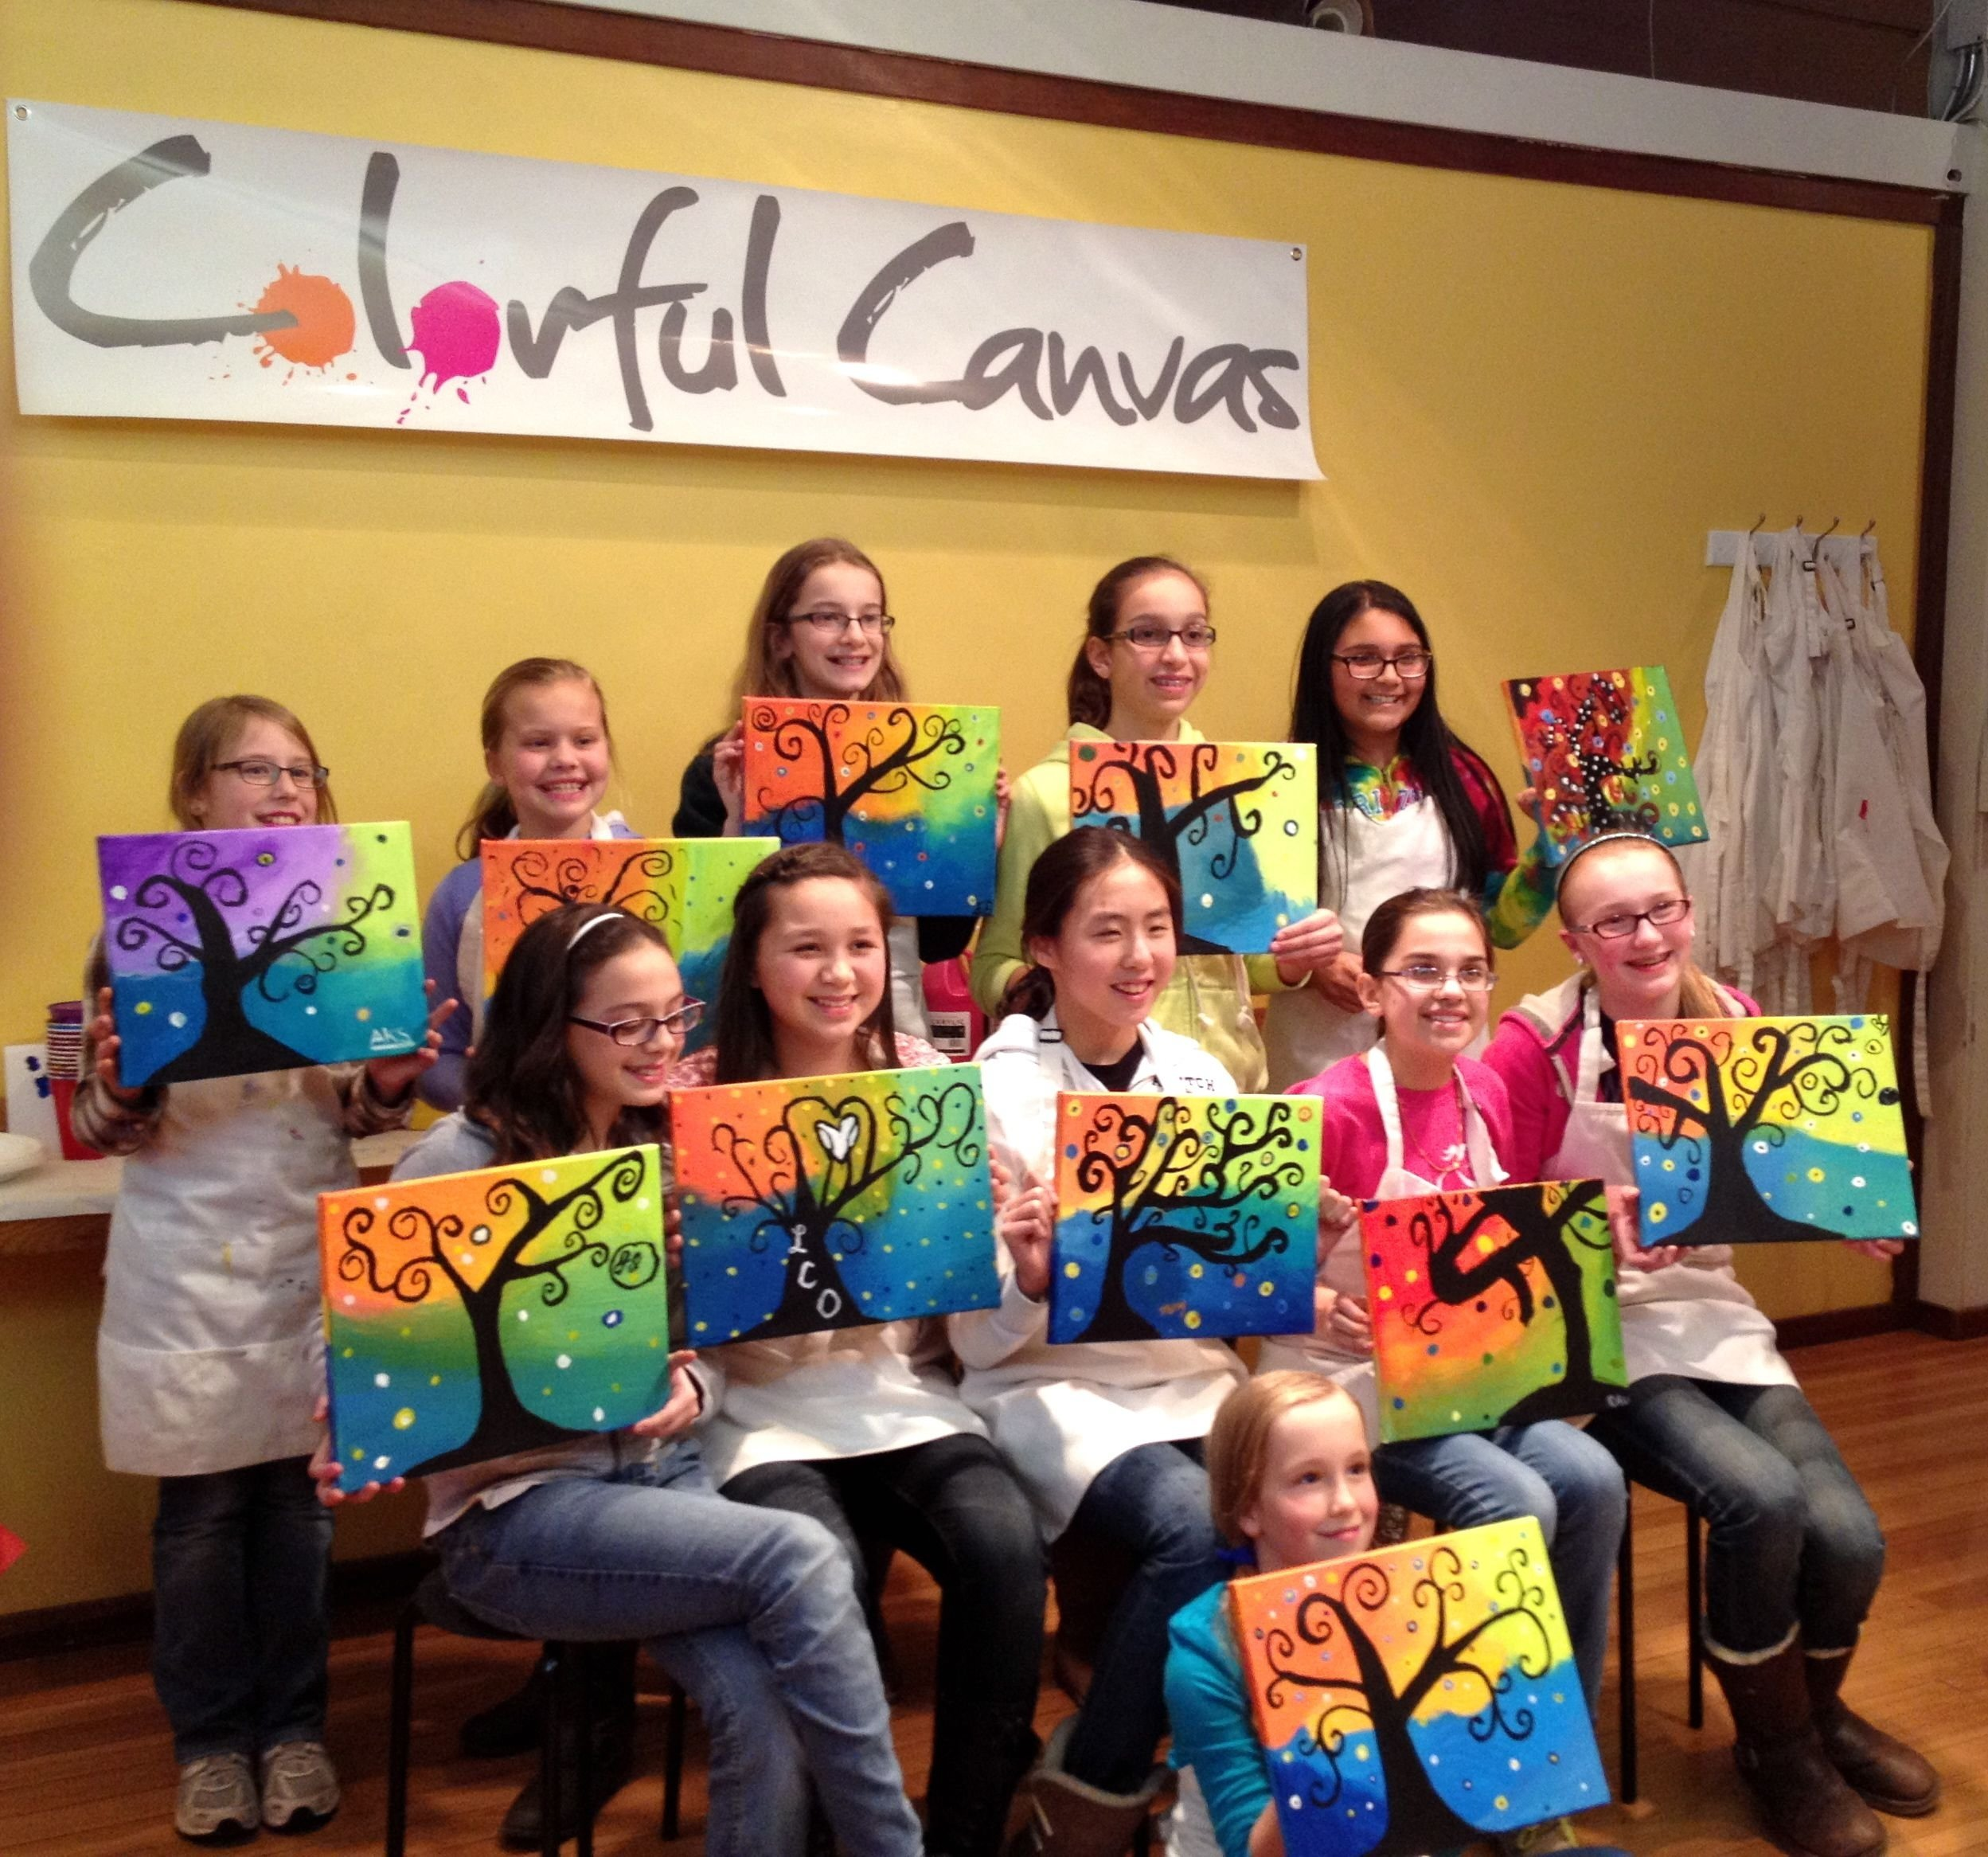 10 Great 12 Yr Old Birthday Ideas 12 year old girls enjoyed this swirly tree painting for a friday 4 2021